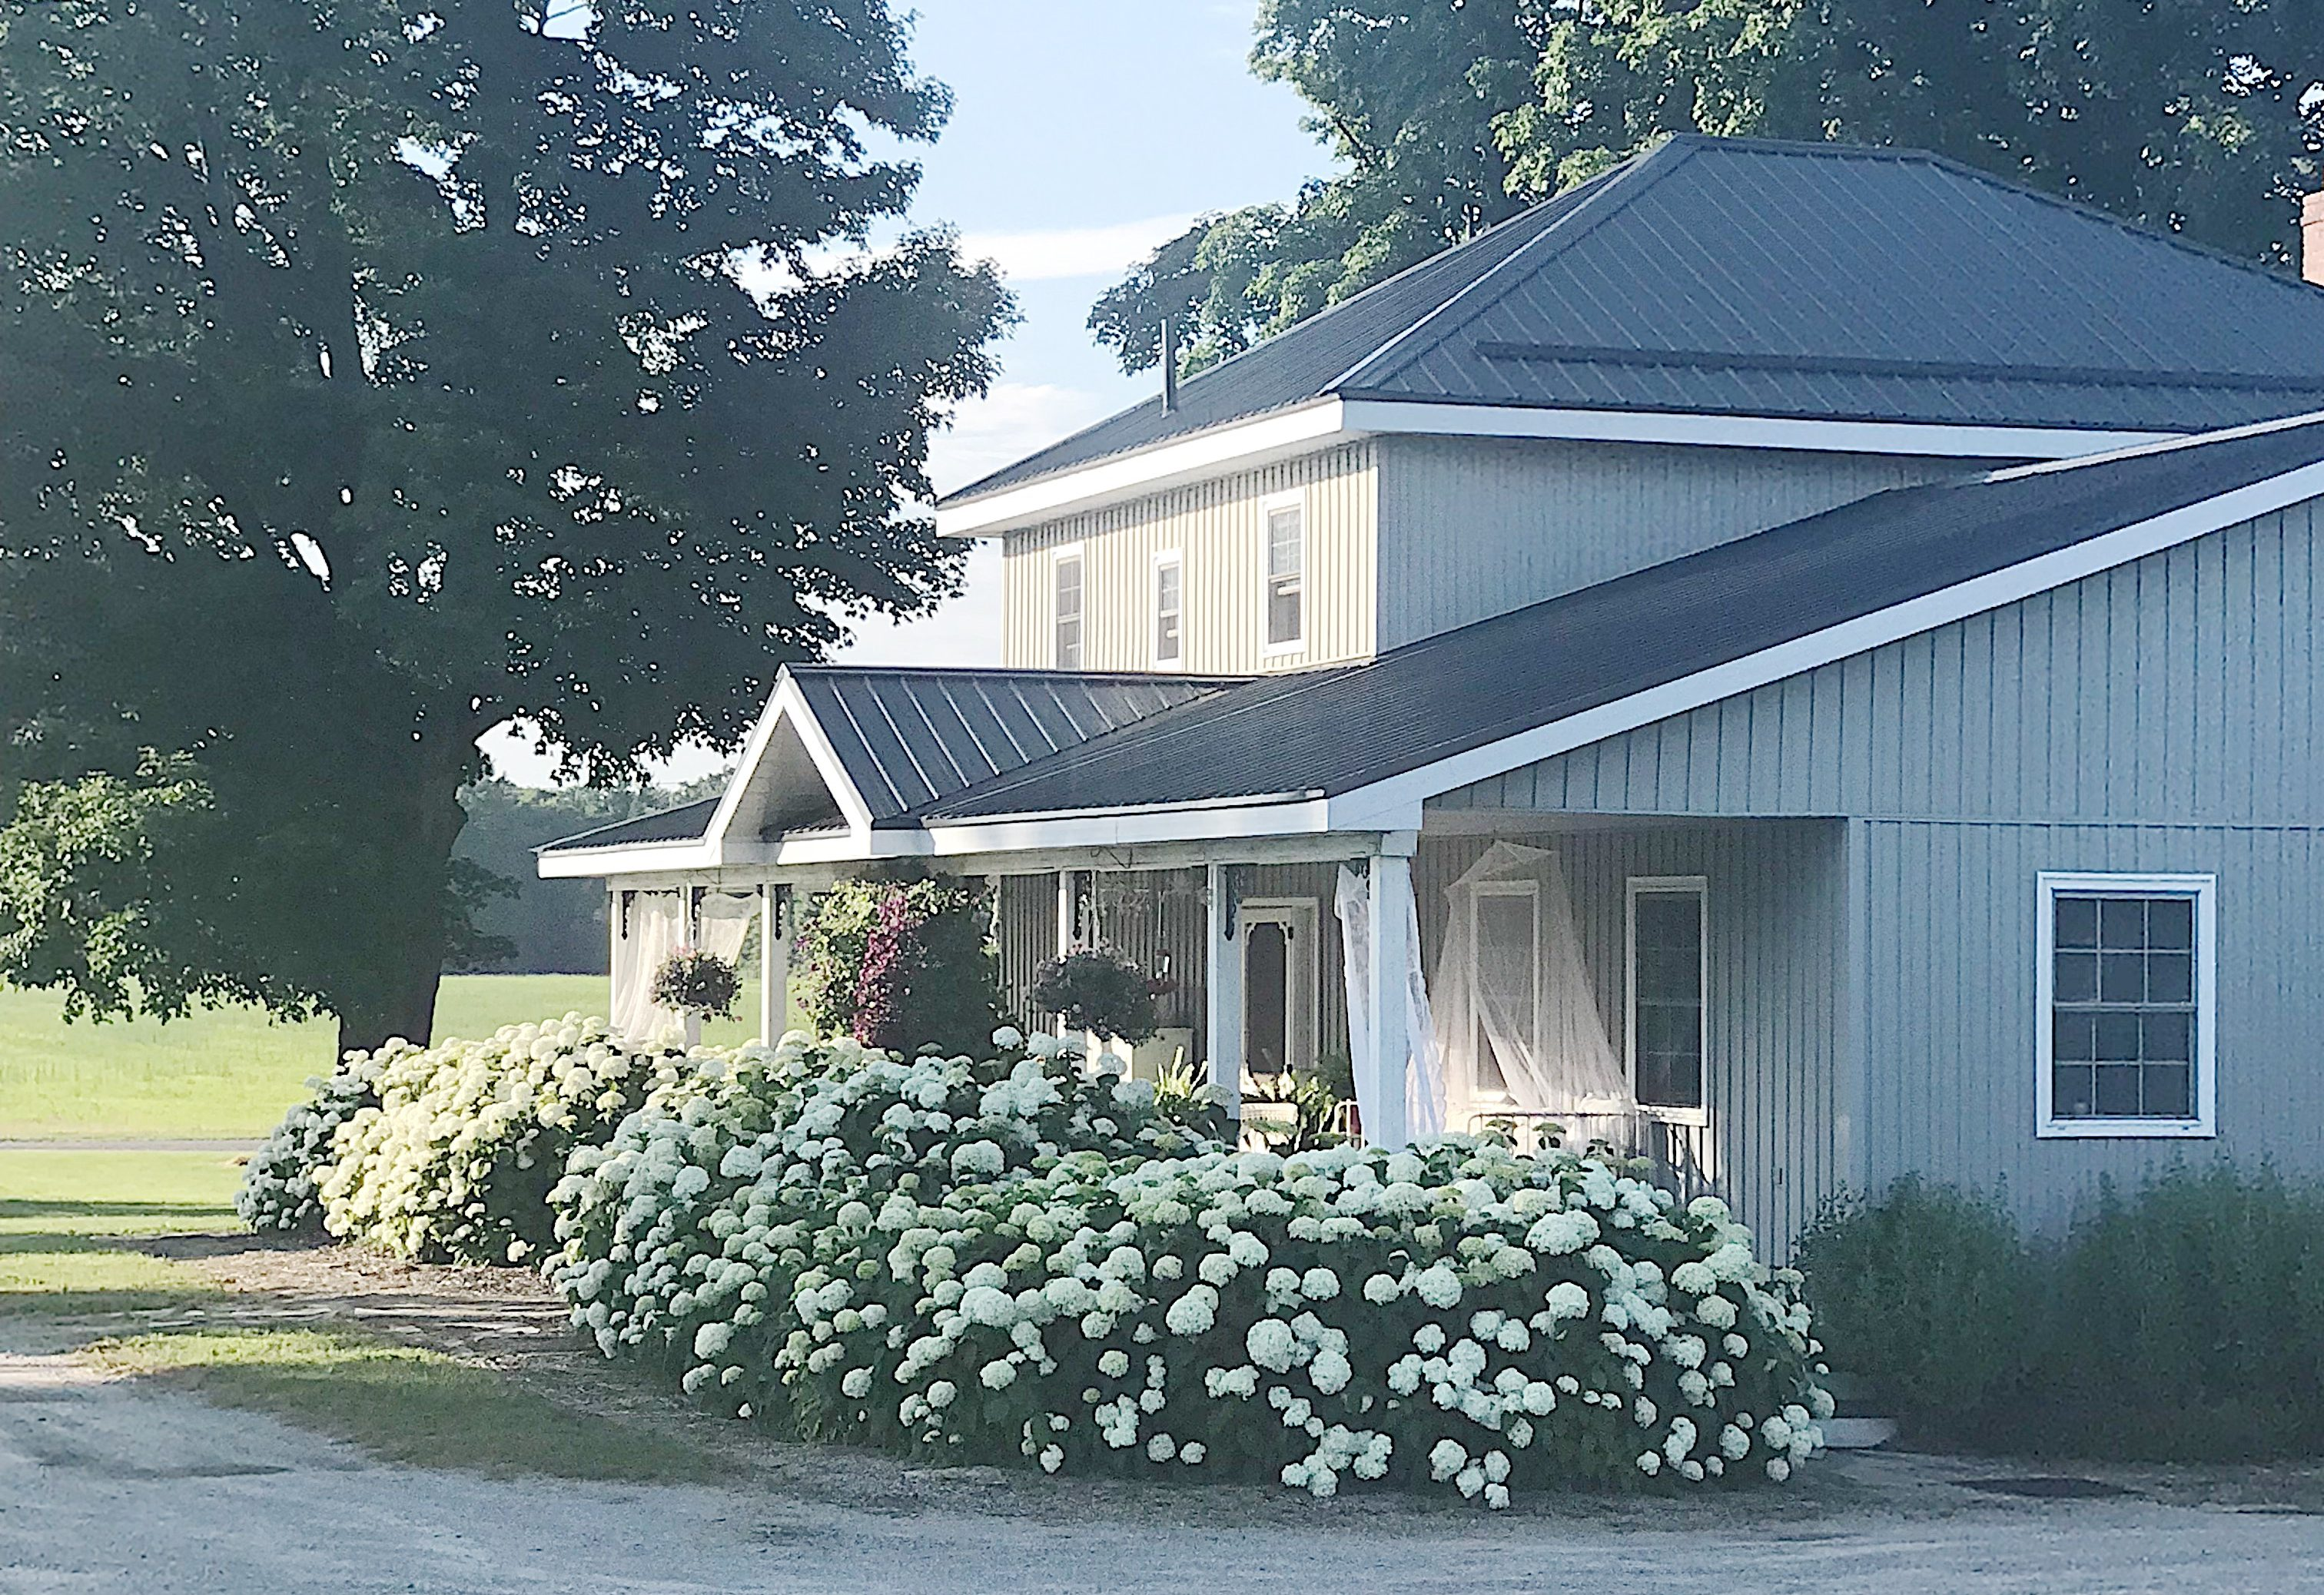 The Hydrangea Farmhouse